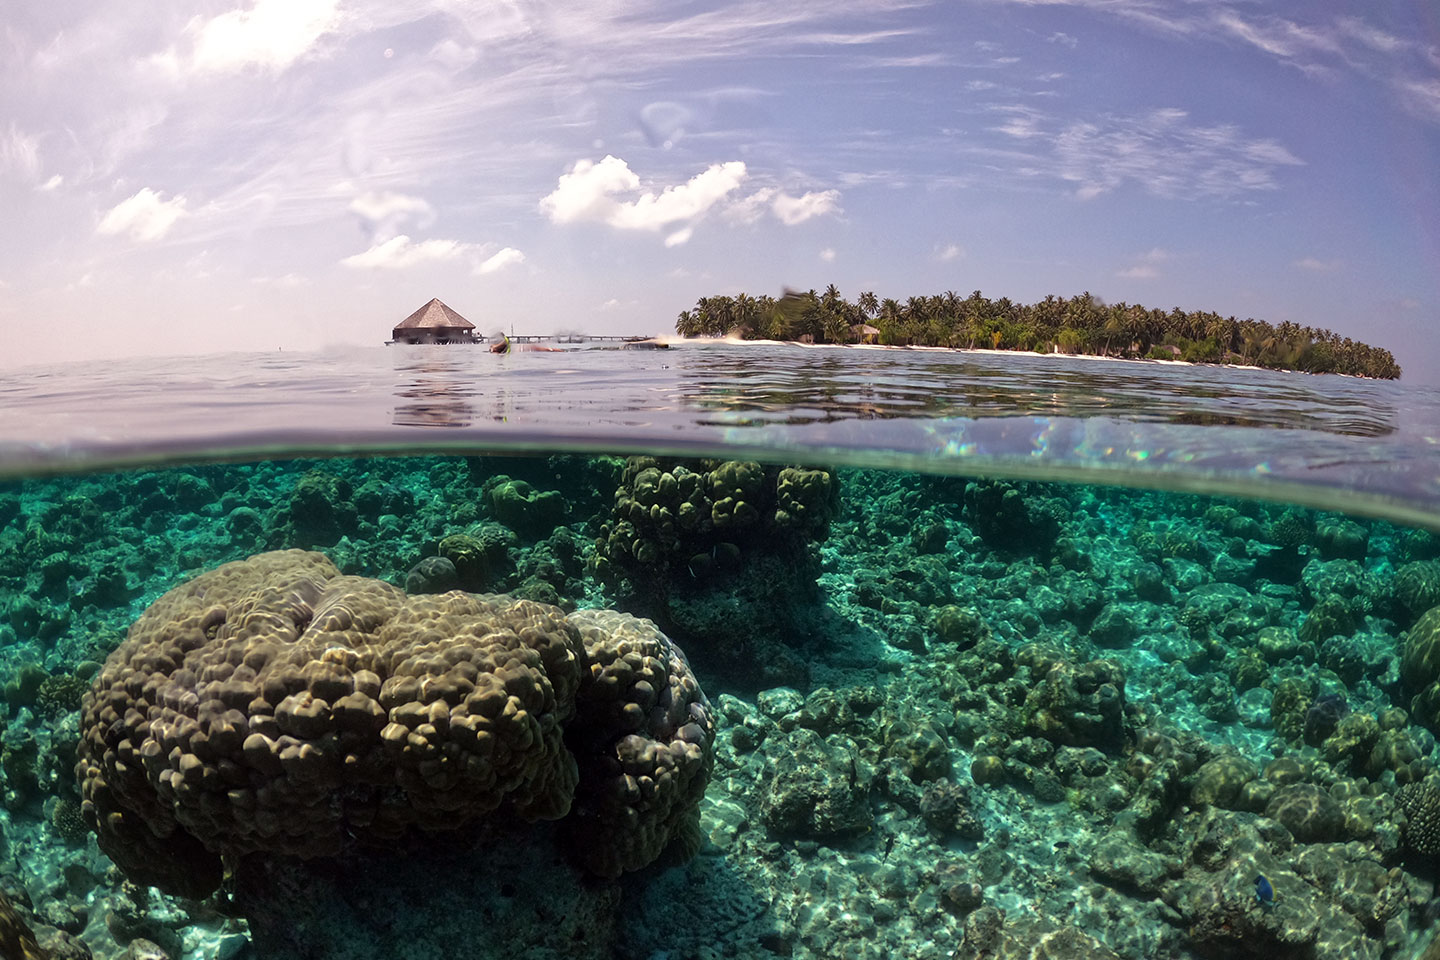 Snorkeling conditions on the reef when the sun is high